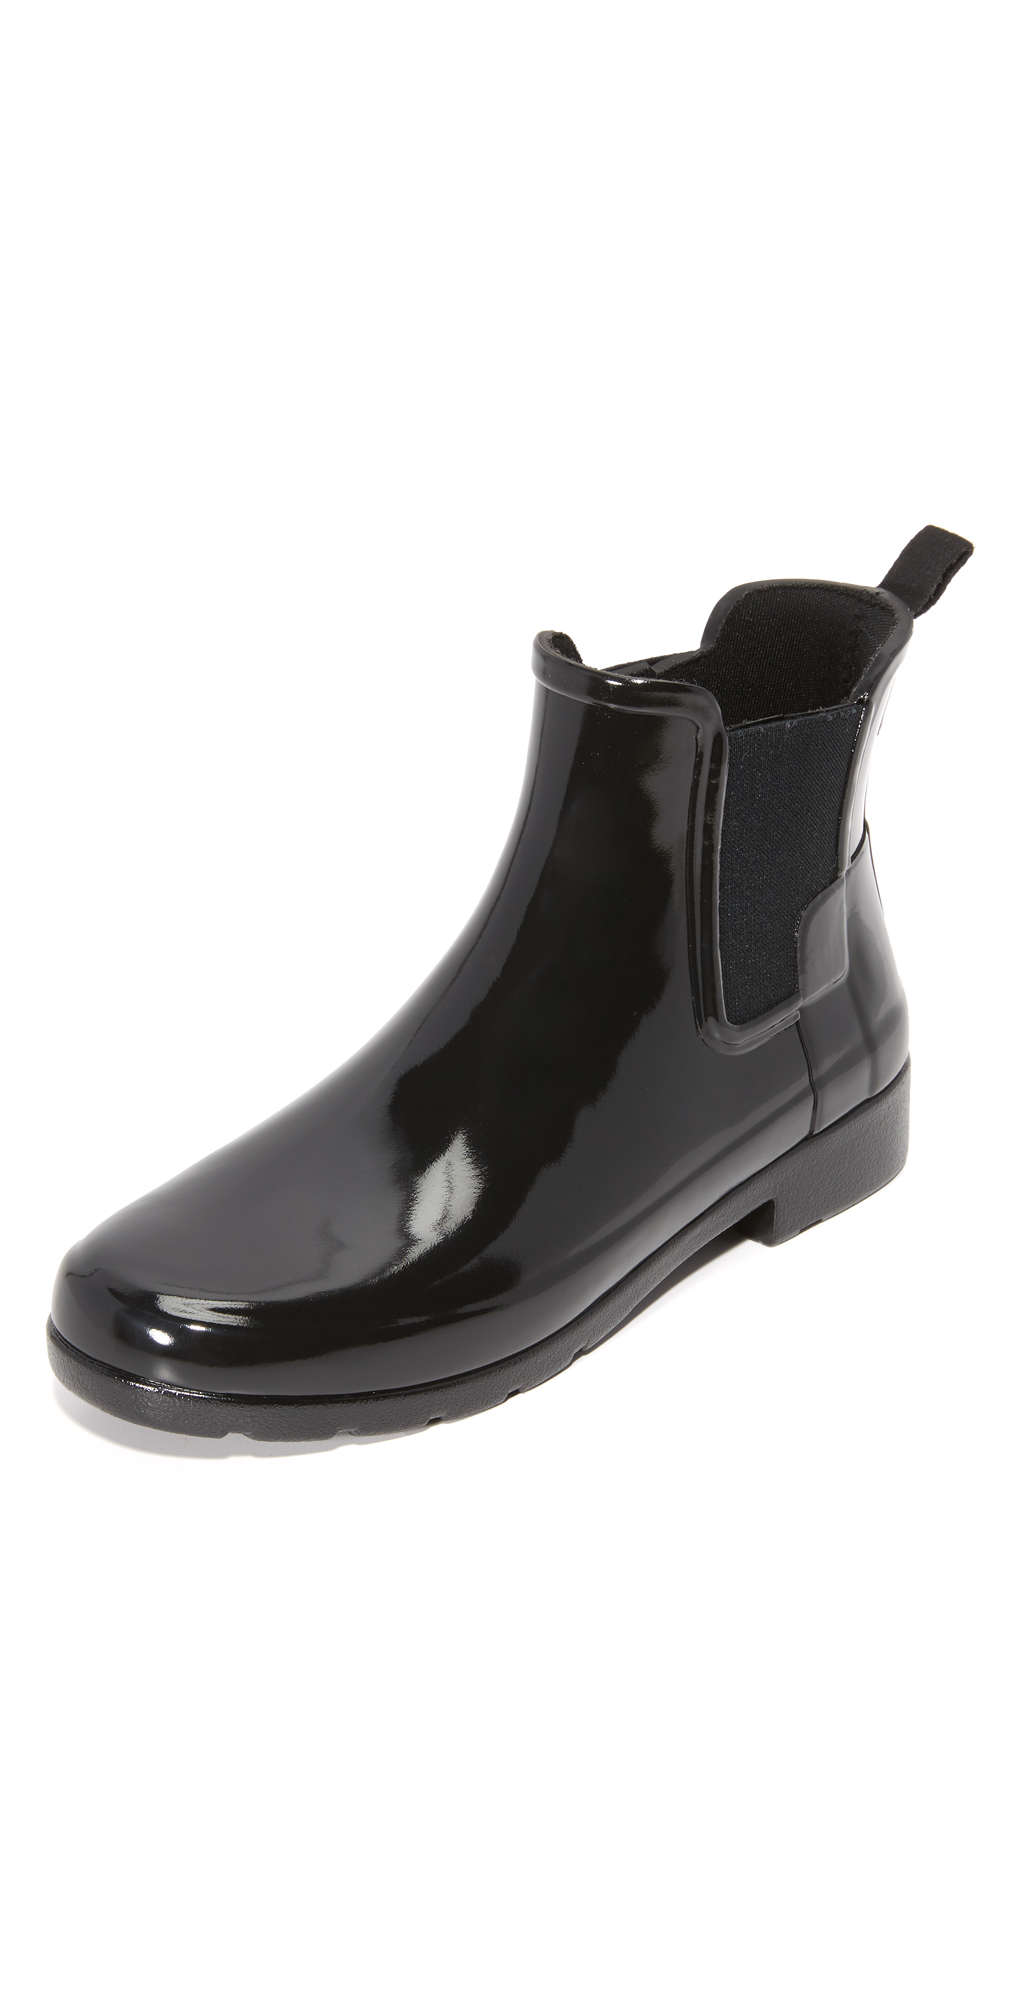 Original Refined Chelsea Booties Hunter Boots